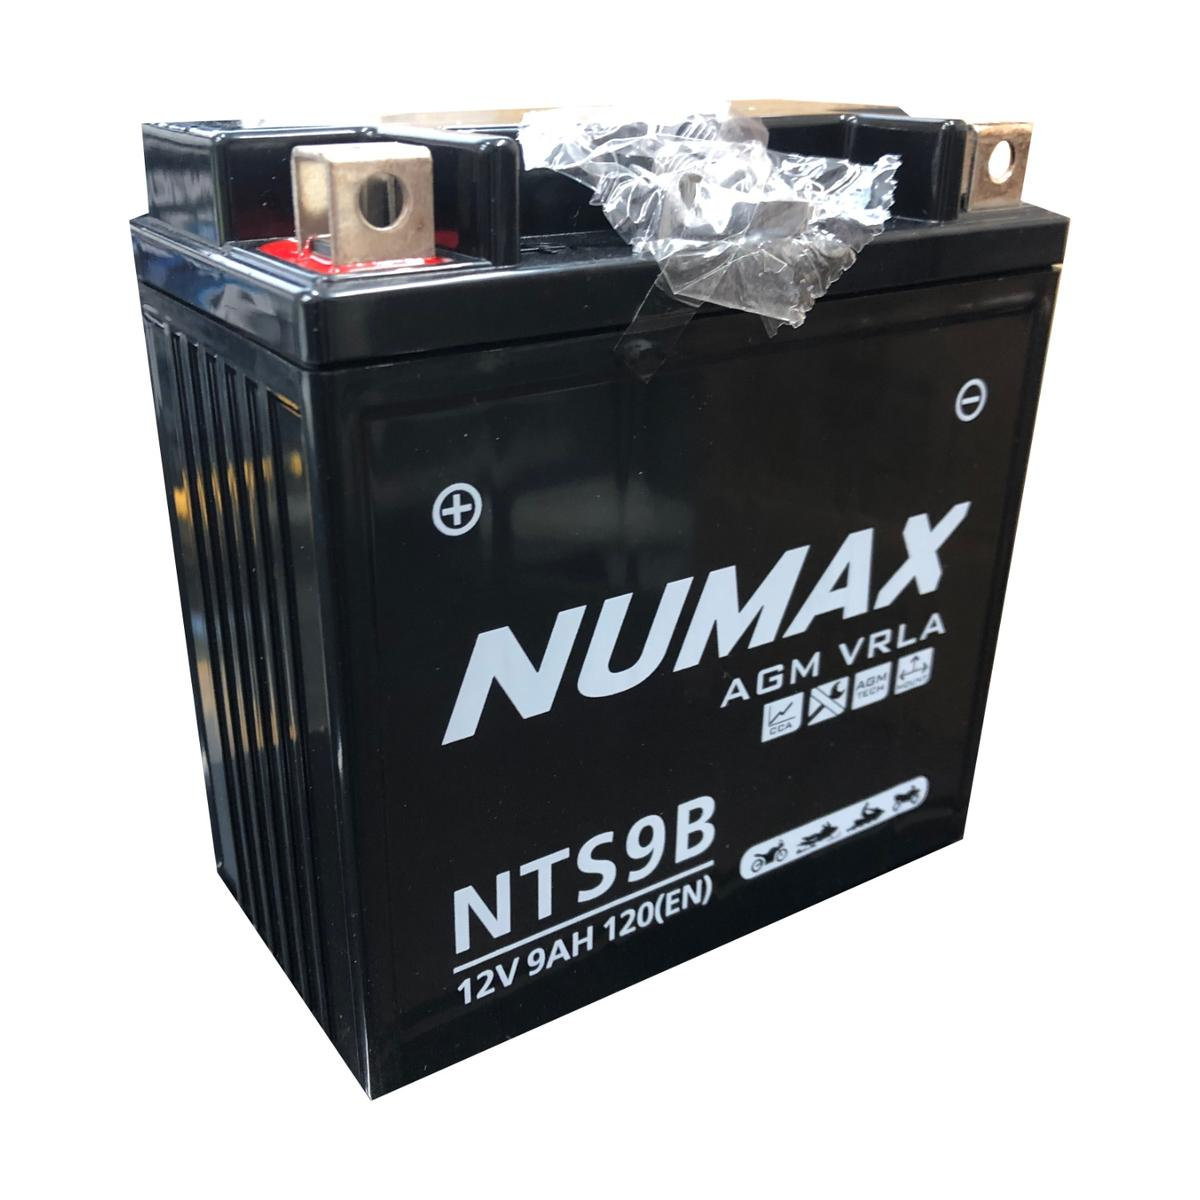 Numax NTS9B 12v Bike Motorbike Motorcycle Battery CAGIVA 125cc Planet YB9-B